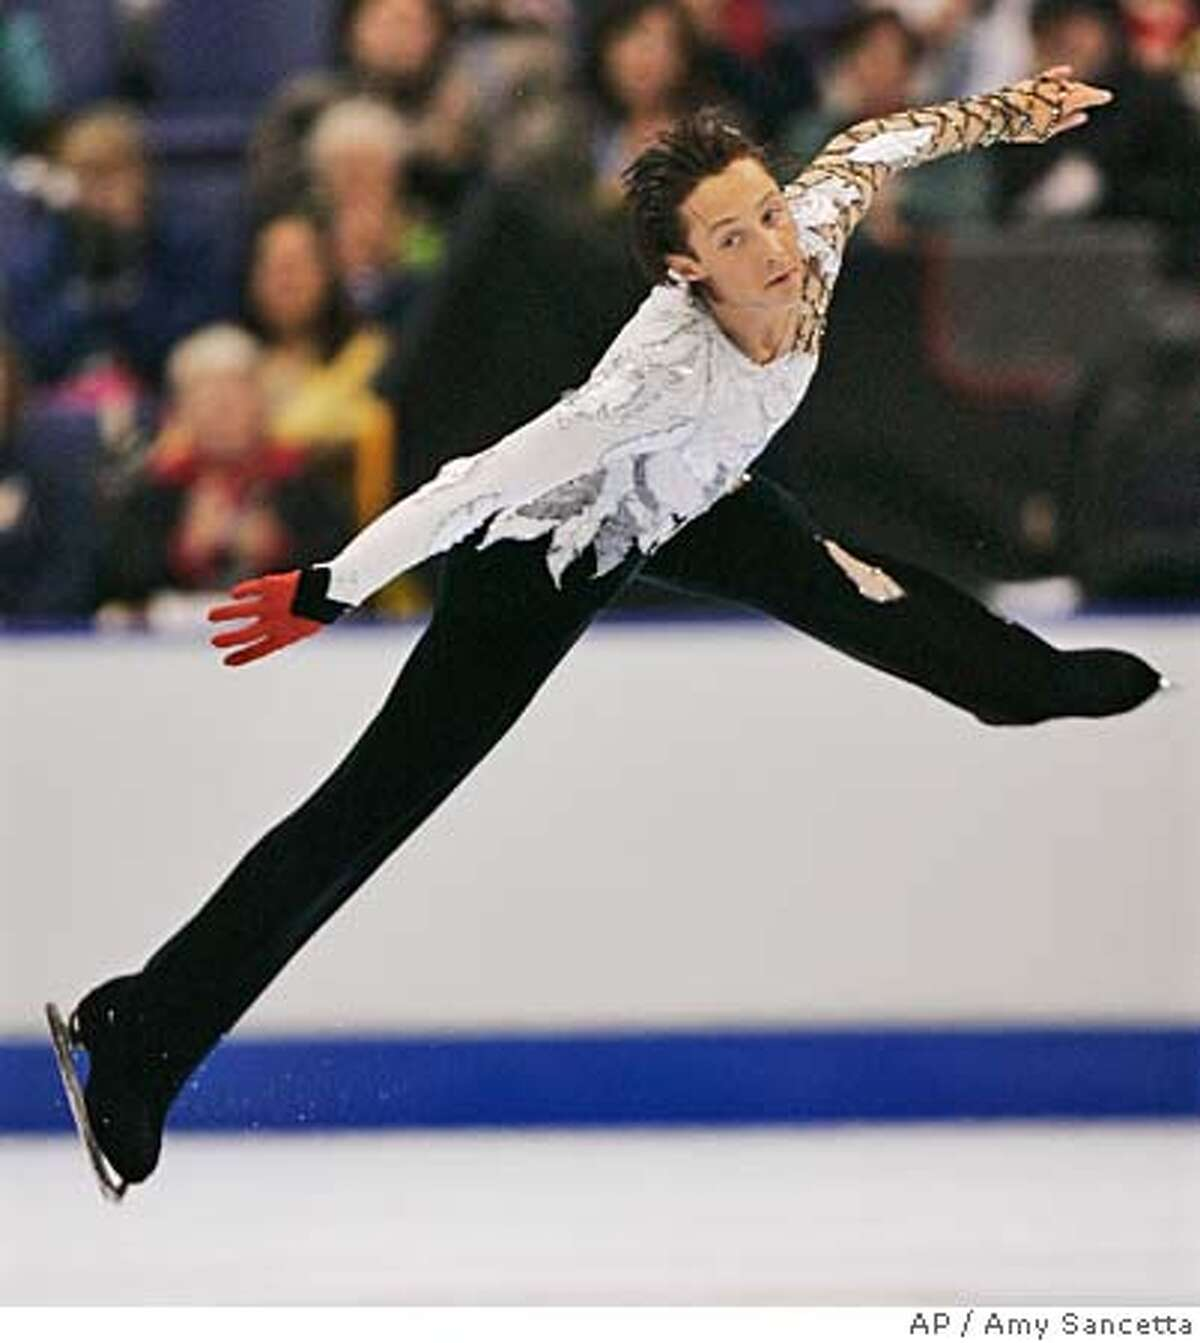 Two-time U.S. figure skating champion Johnny Weir, from Newark, Del., performs a death drop during the mens short program at the U.S. Figure Skating Championships in St. Louis, Thursday, Jan. 12, 2006. (AP Photo/Amy Sancetta) Ran on: 01-13-2006 Johnny Weir said he was thrilled at the way he skated in Thursdays short program. The long program is Saturday.